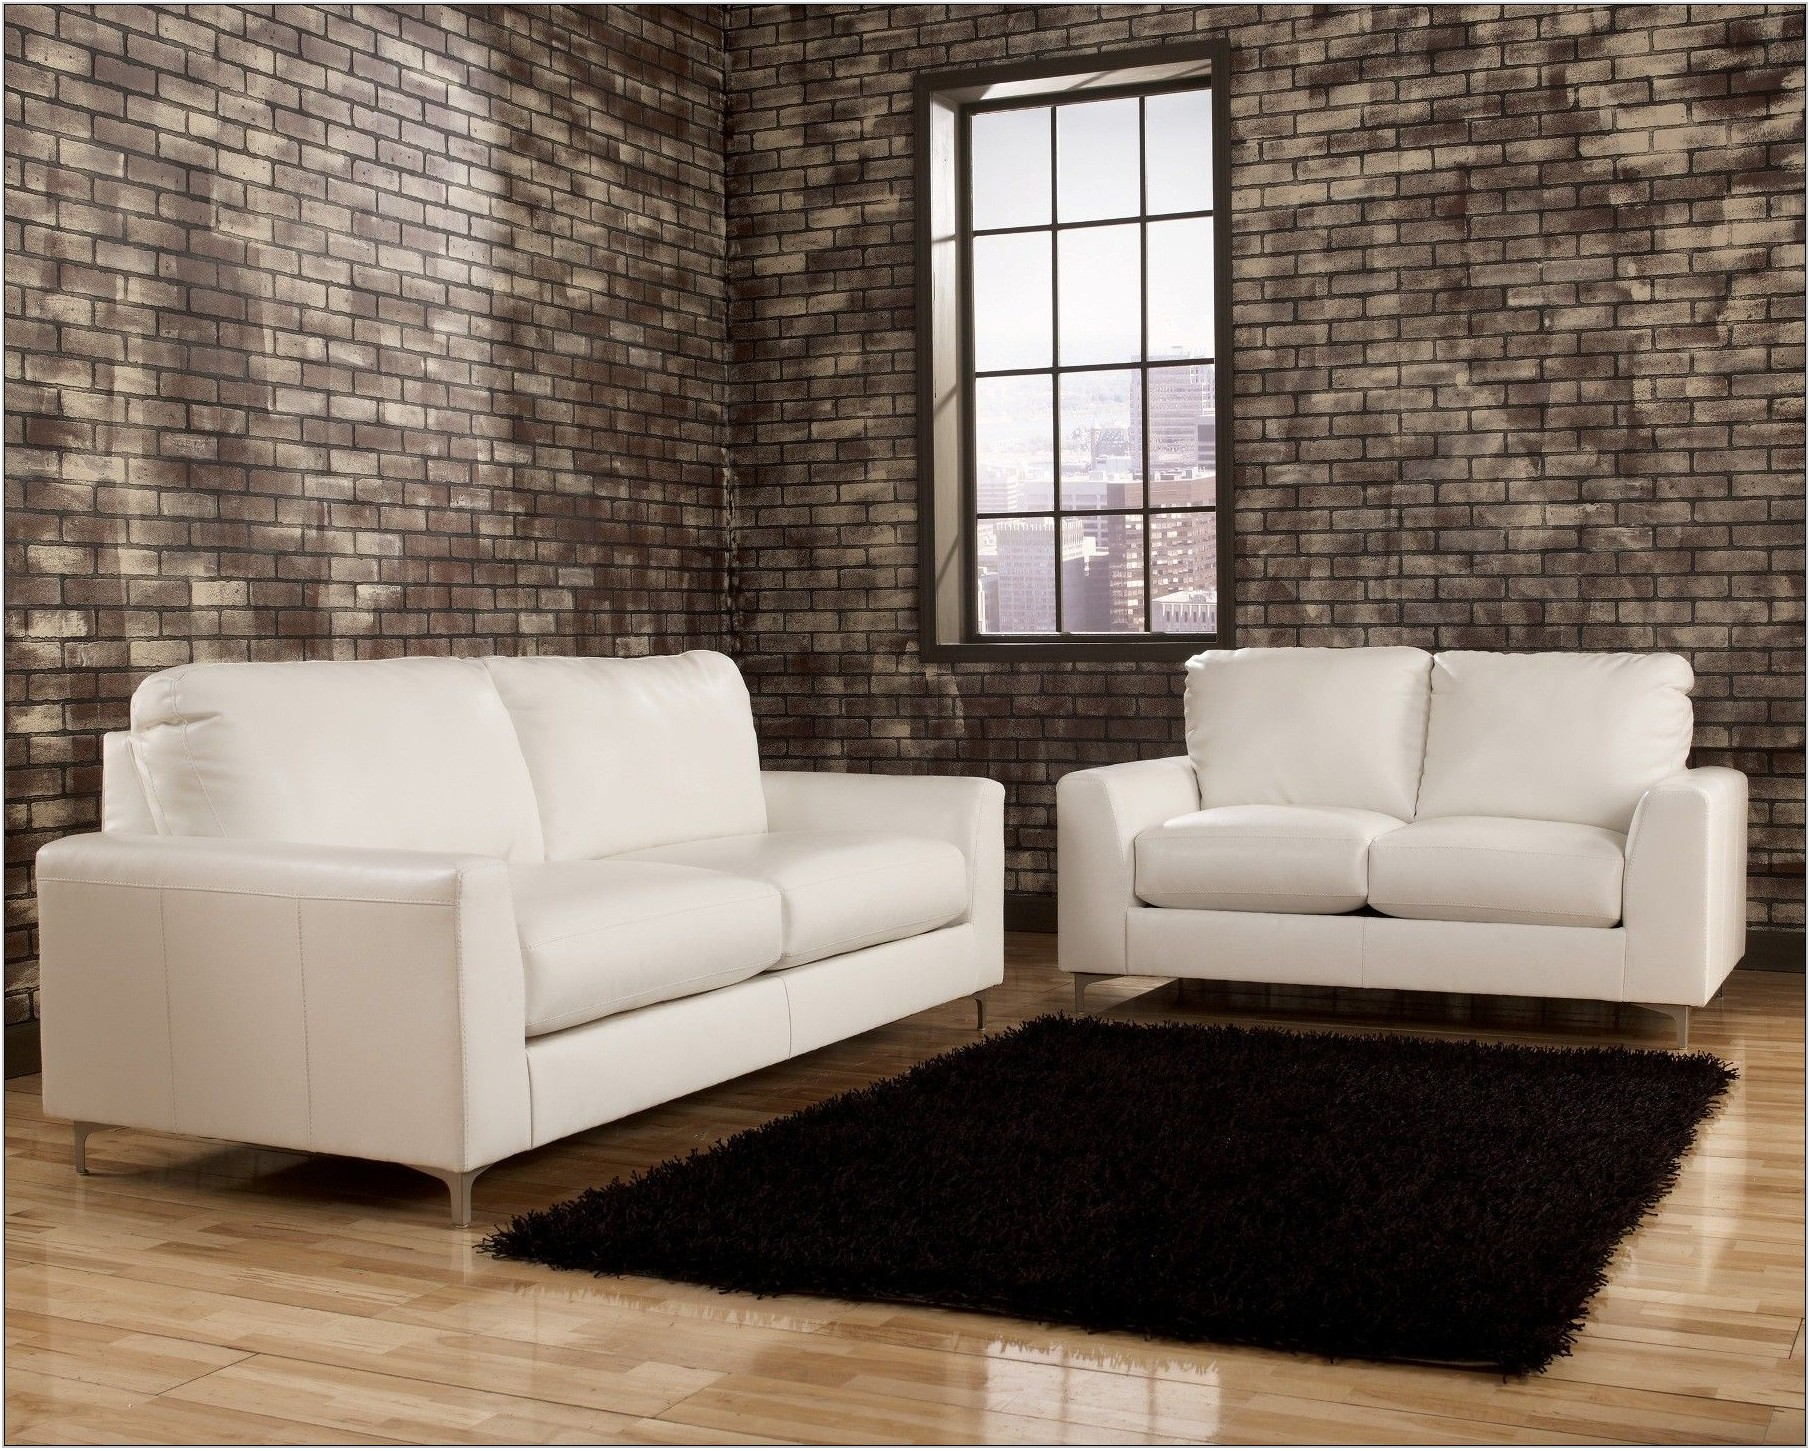 Ashley Furniture White Living Room Set